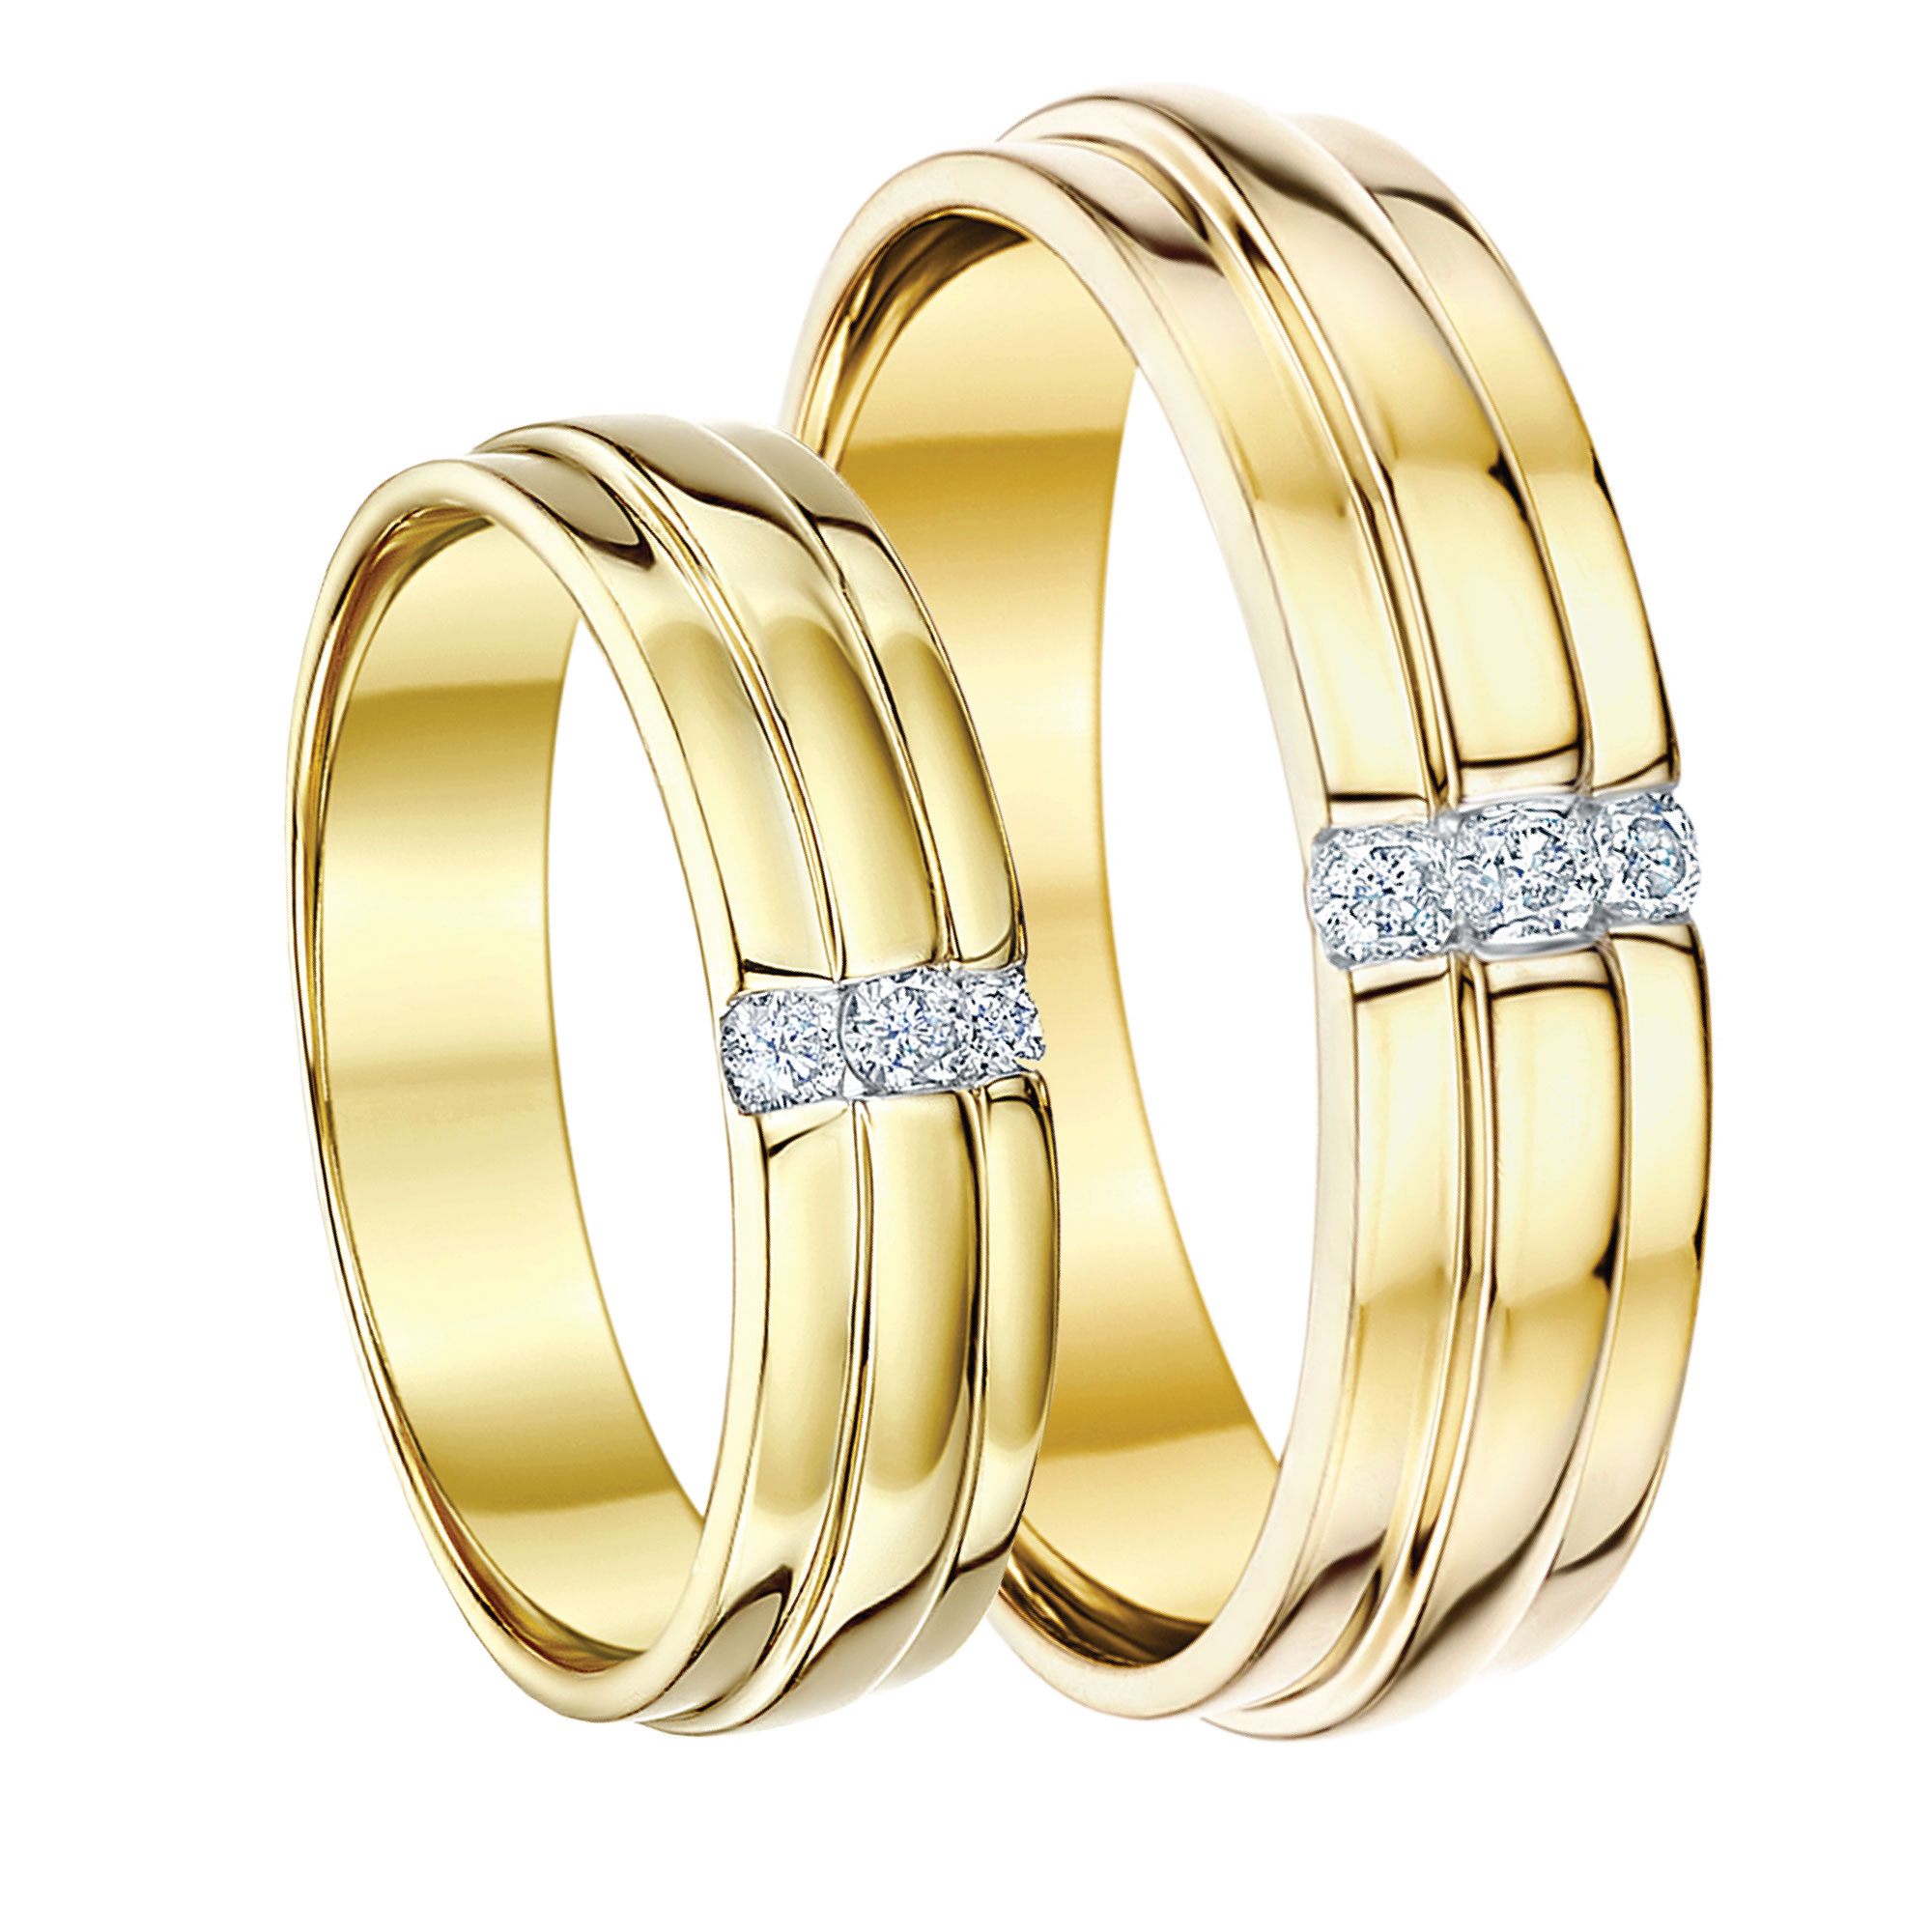 that express yellow classic band s gold groom with jewelry style men rings engraving ring wedding inside different news styles samuel a grooms for kolawa the